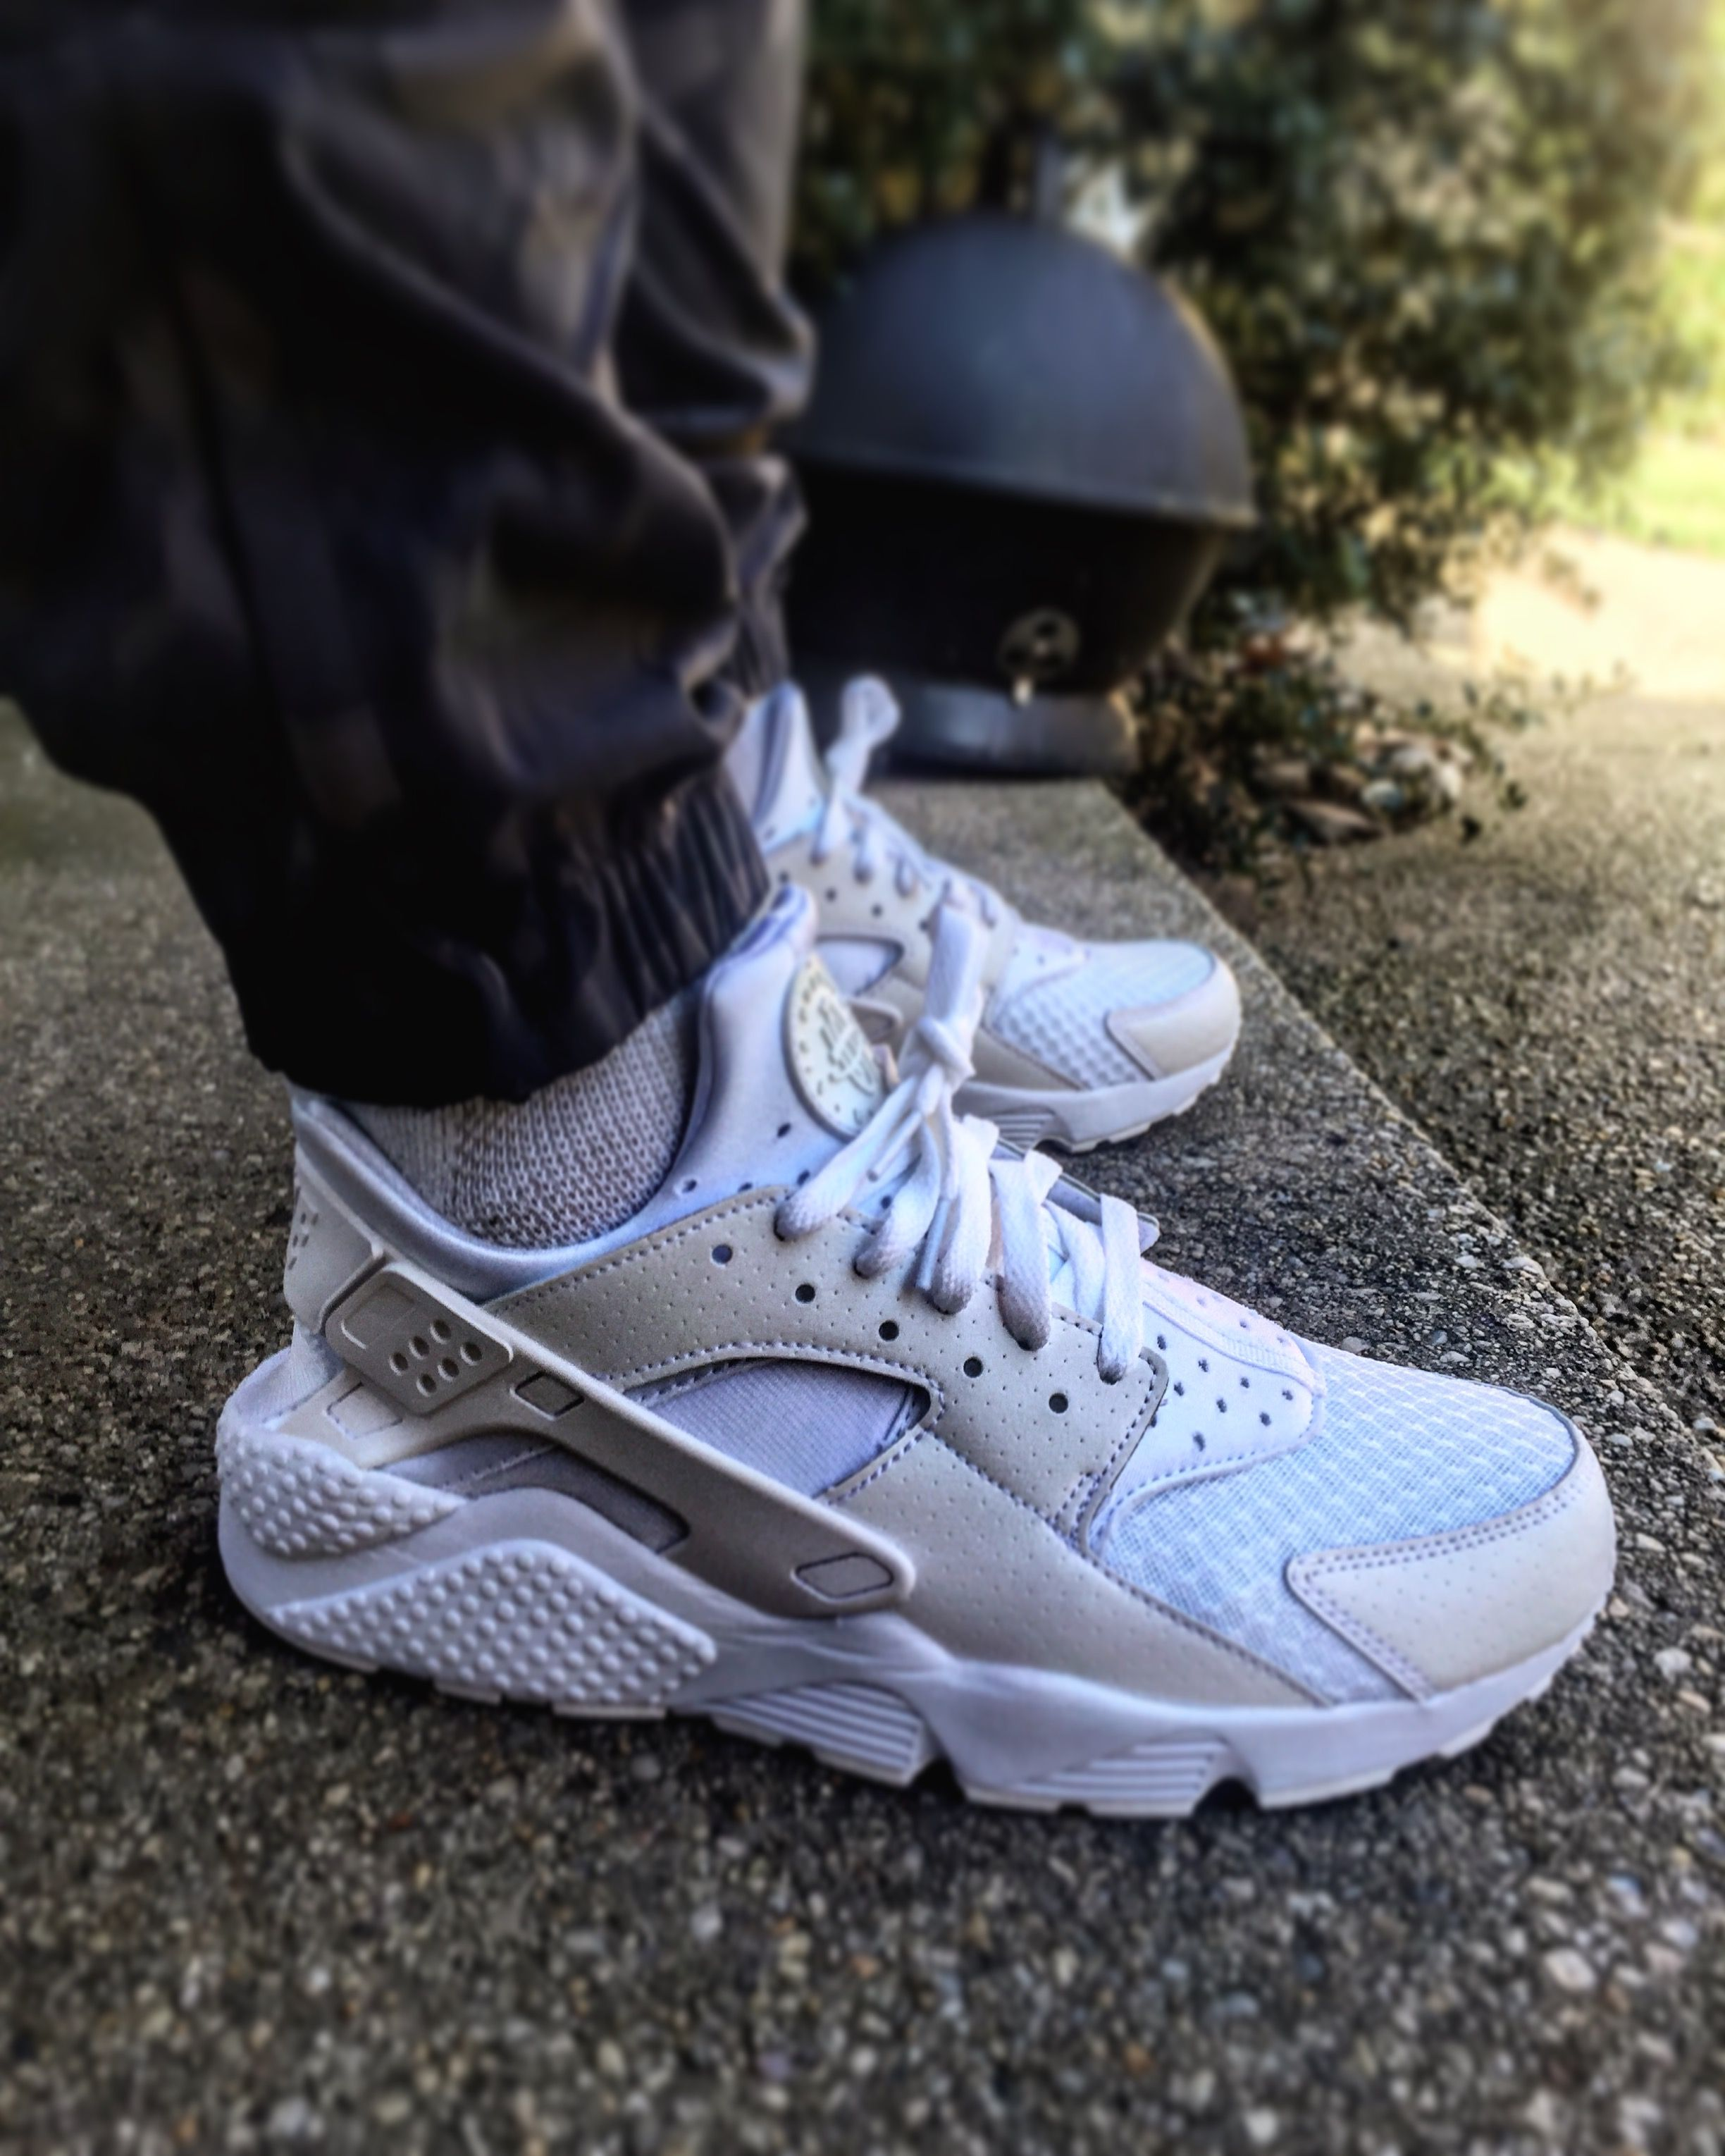 Triple White Nike Air Huaraches w/ Nike Camo Joggers